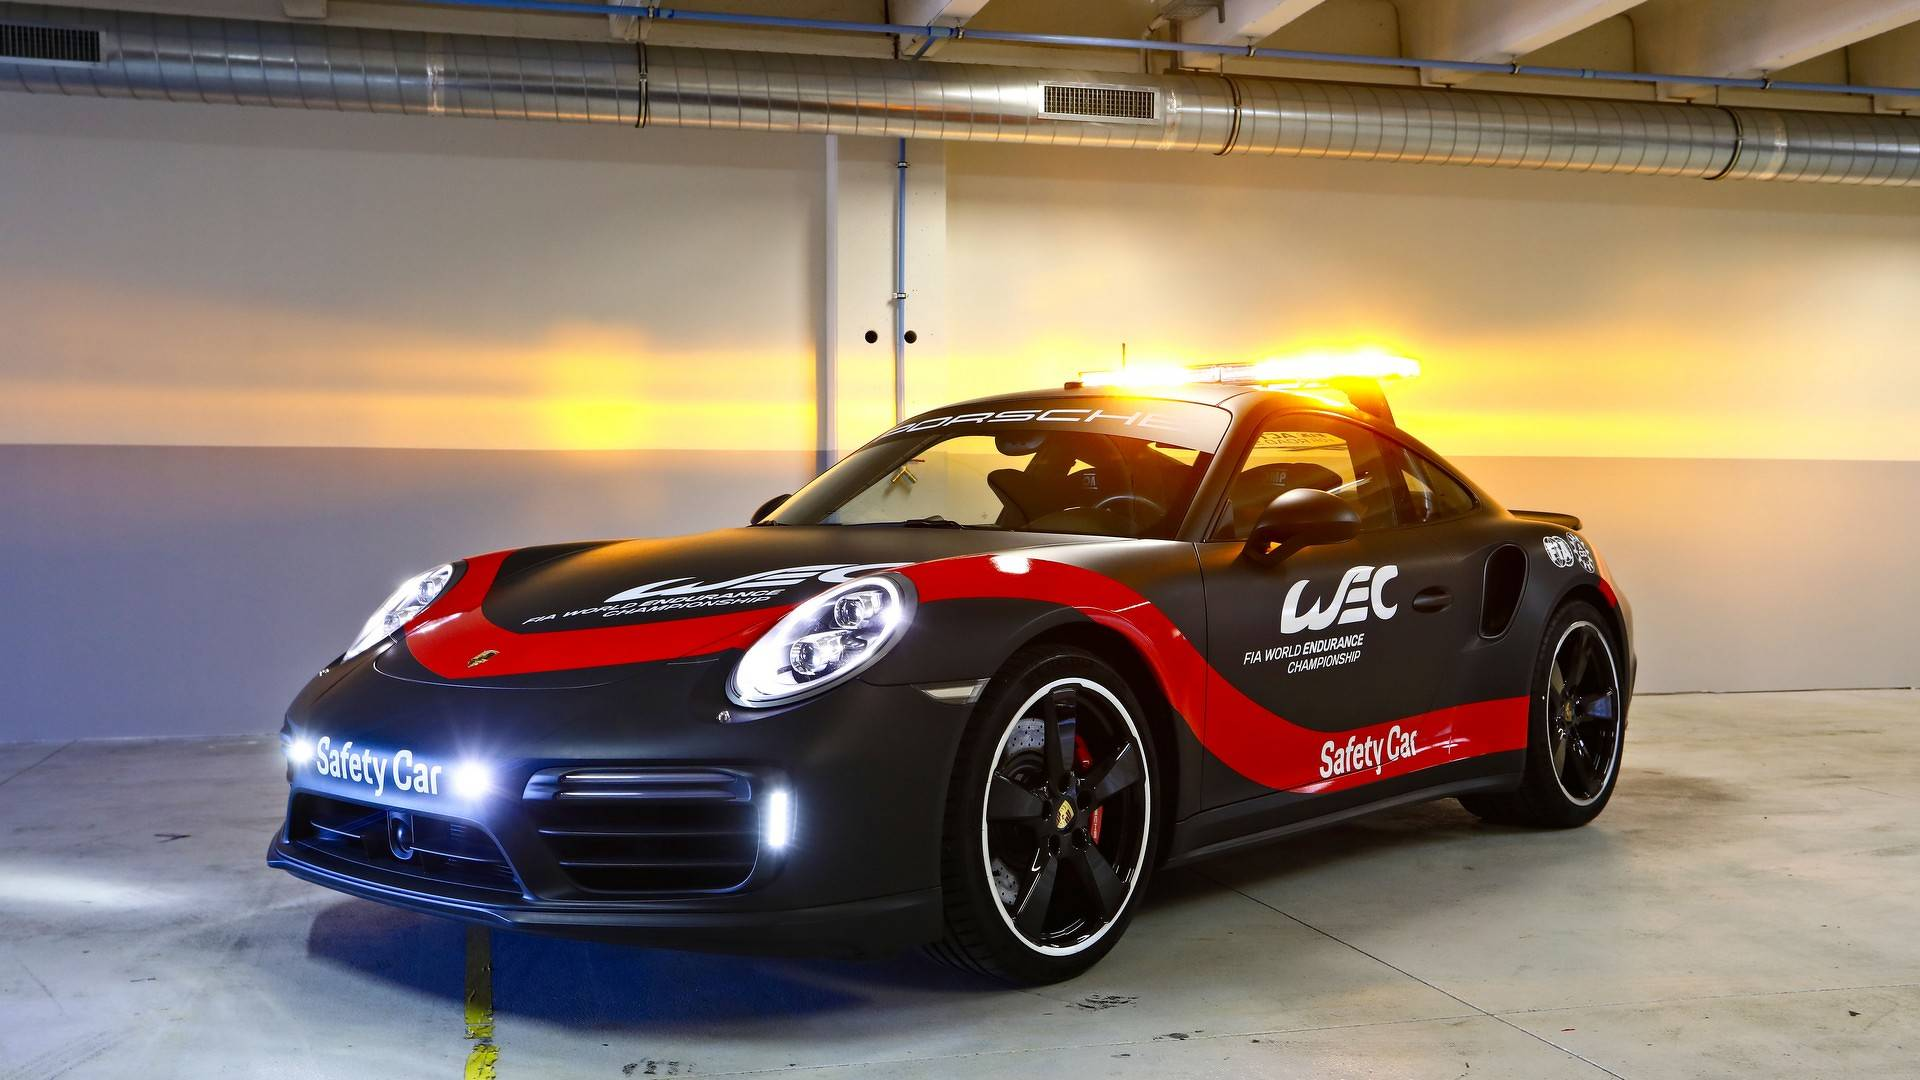 Porsche 911 Turbo (991.2) WEC Safety Car (Front)